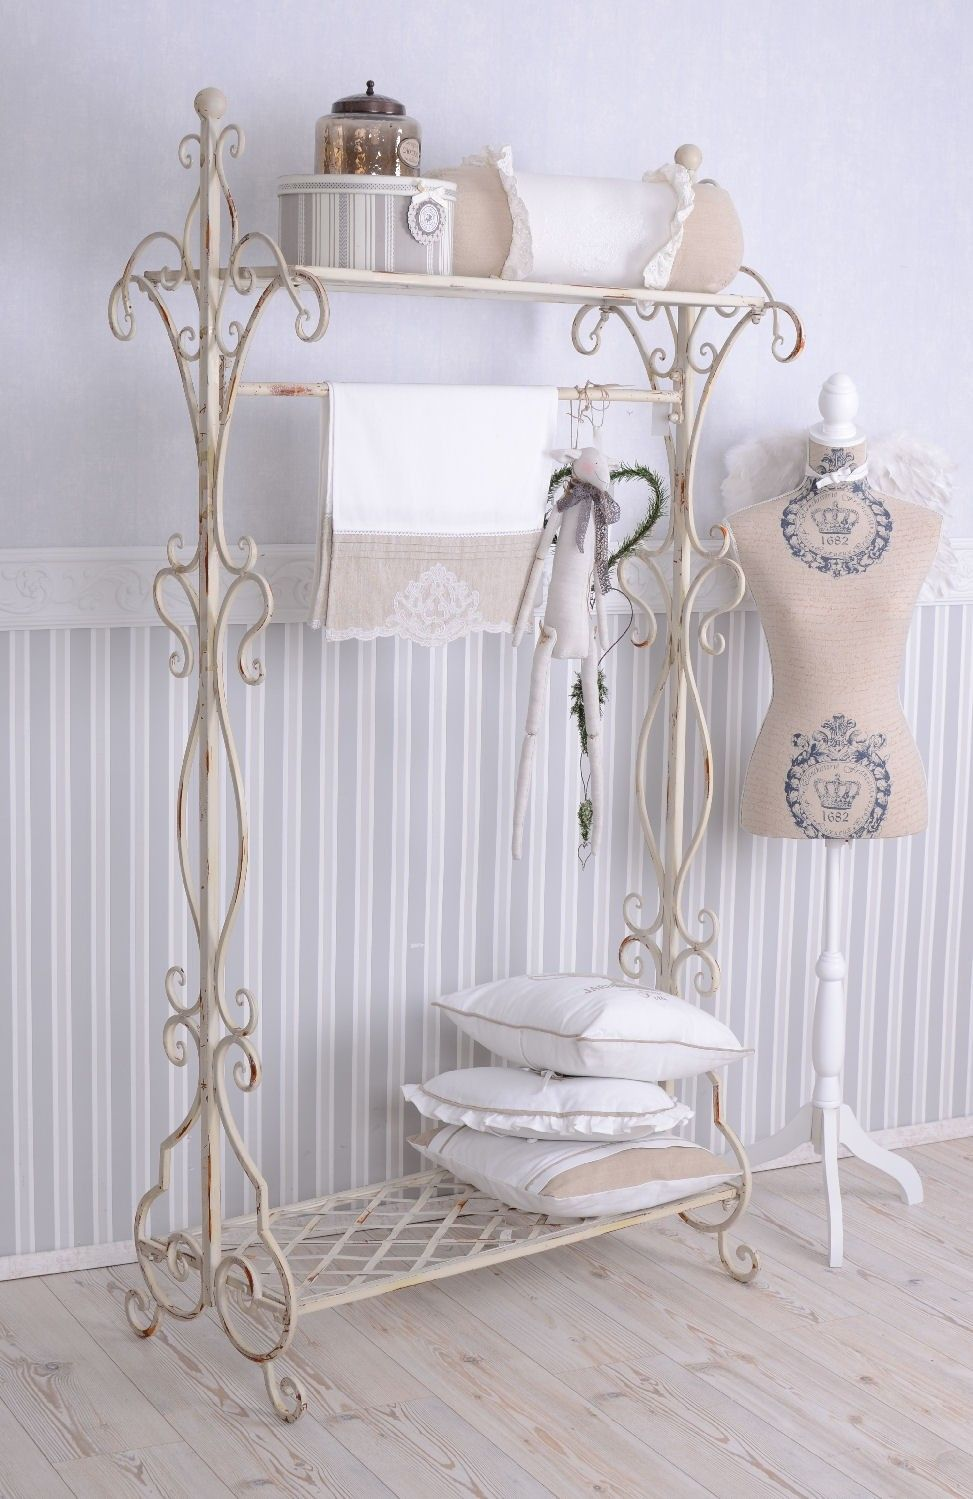 nostalgie garderobe shabby chic garderobenst nder weiss metallst nder bath bedding and. Black Bedroom Furniture Sets. Home Design Ideas